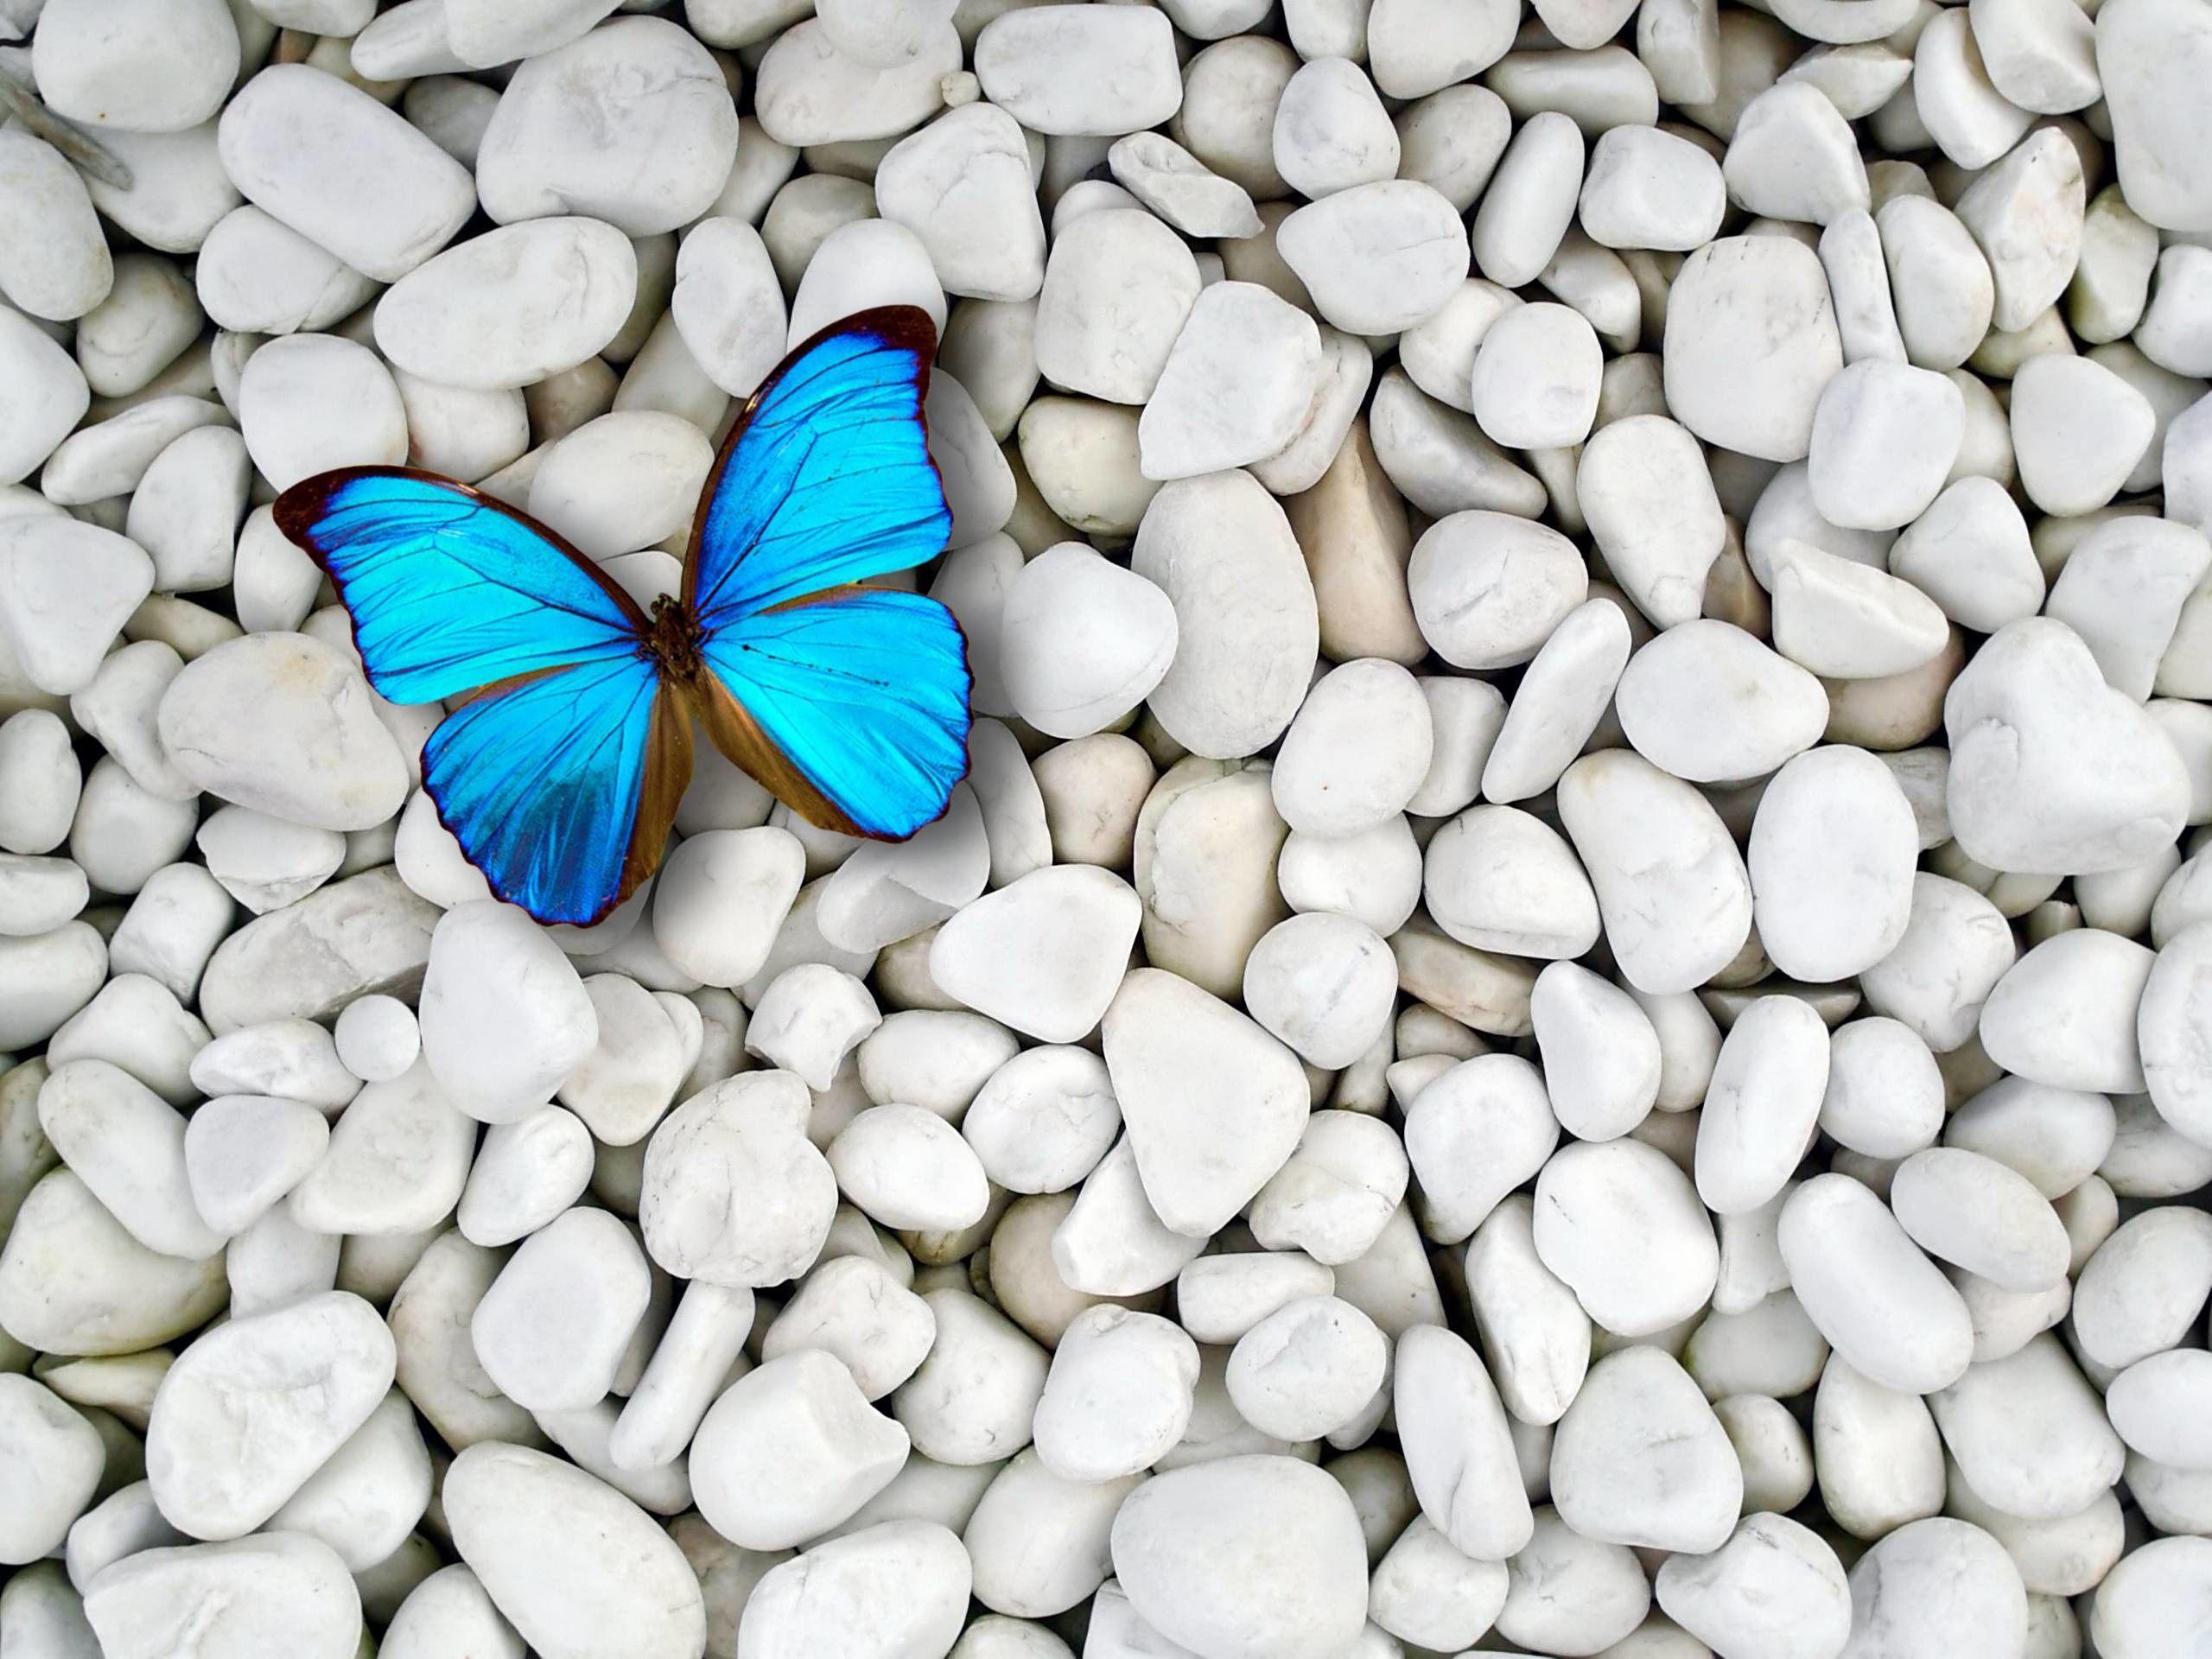 2560x1920 Images For > Blue Butterfly Desktop Wallpaper